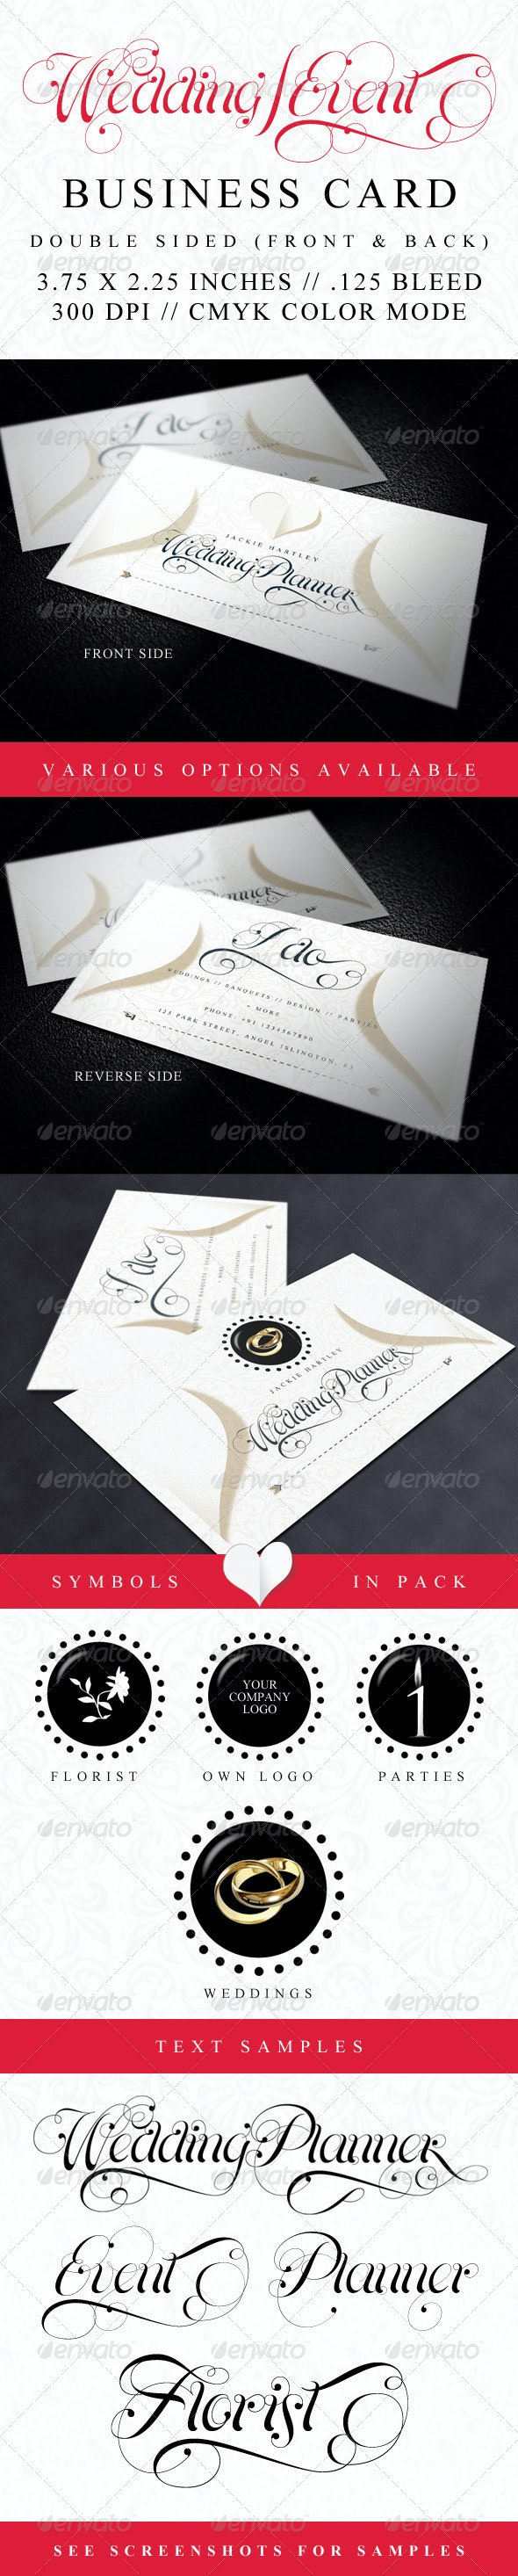 Elegant Wedding and Event Business Card - Industry Specific Business Cards